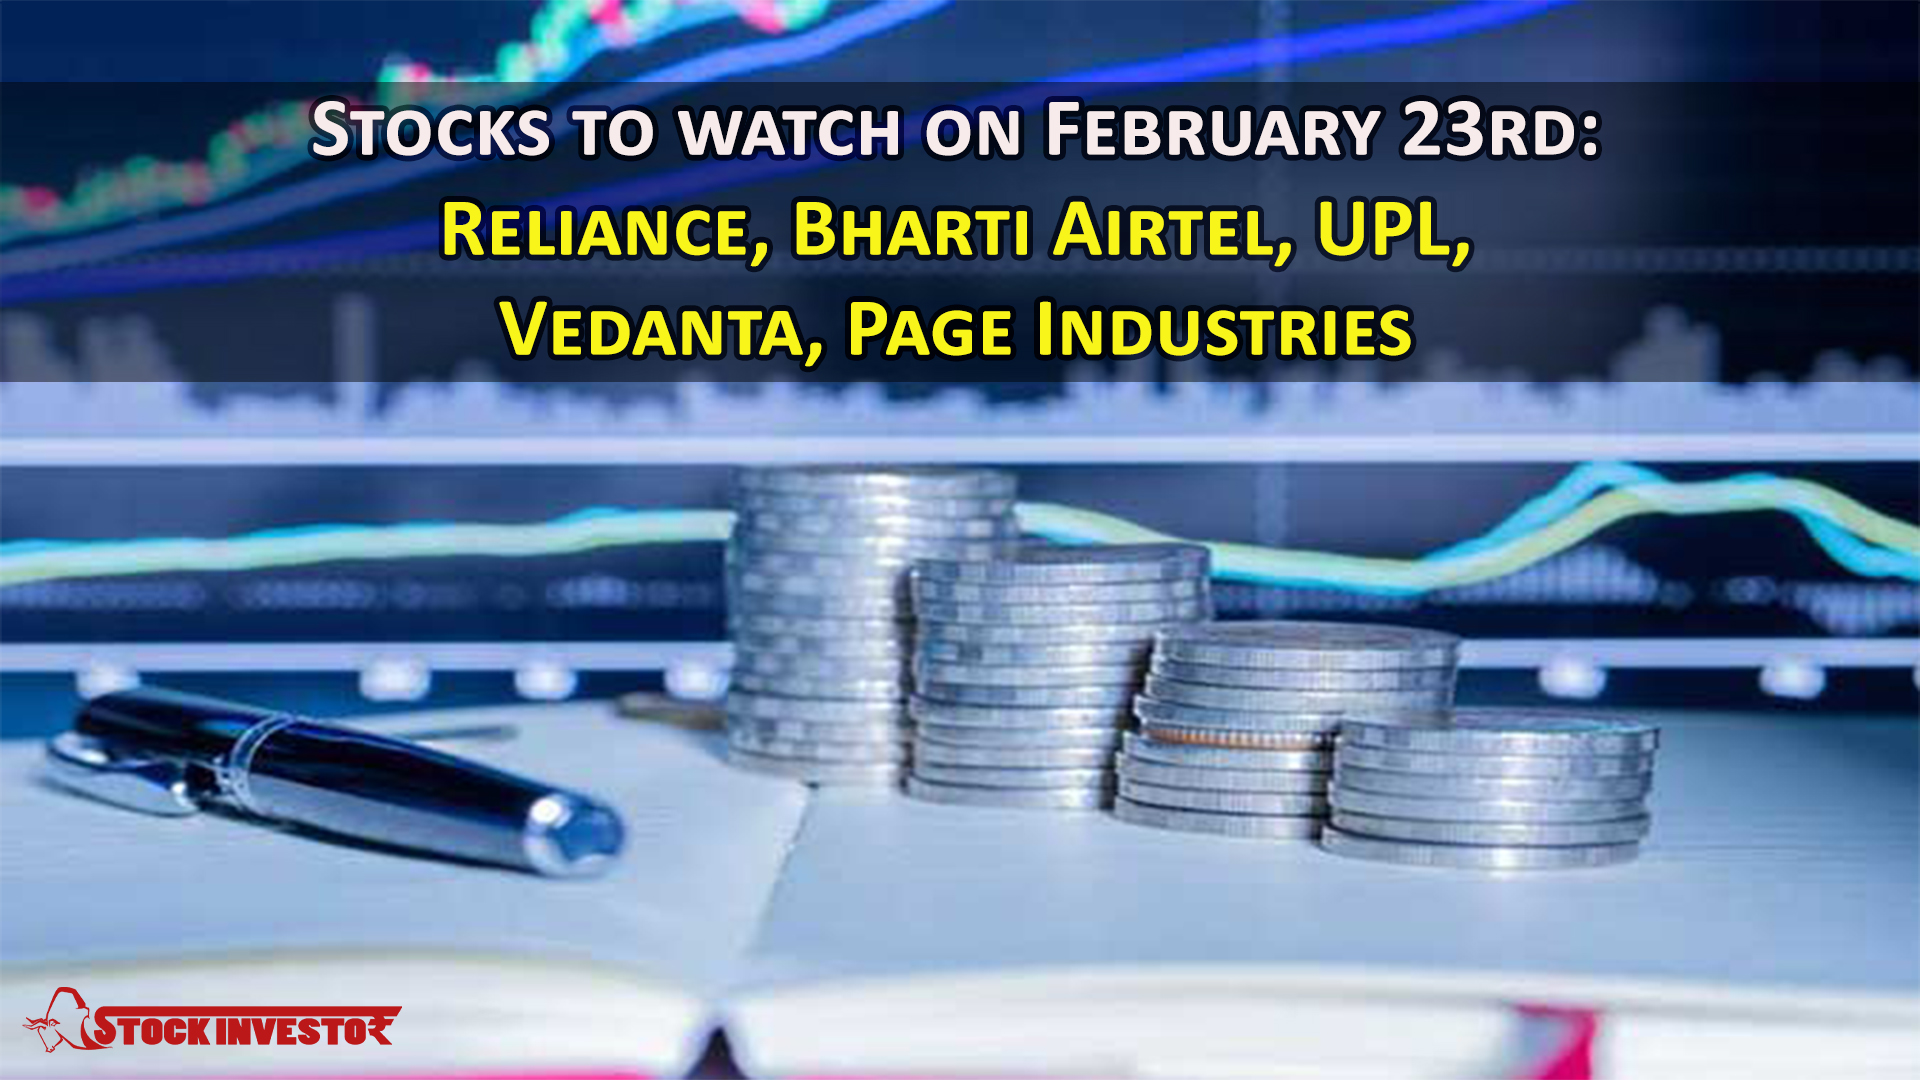 Stocks to watch on February 23rd: Reliance, Bharti Airtel, UPL, Vedanta, Page Industries